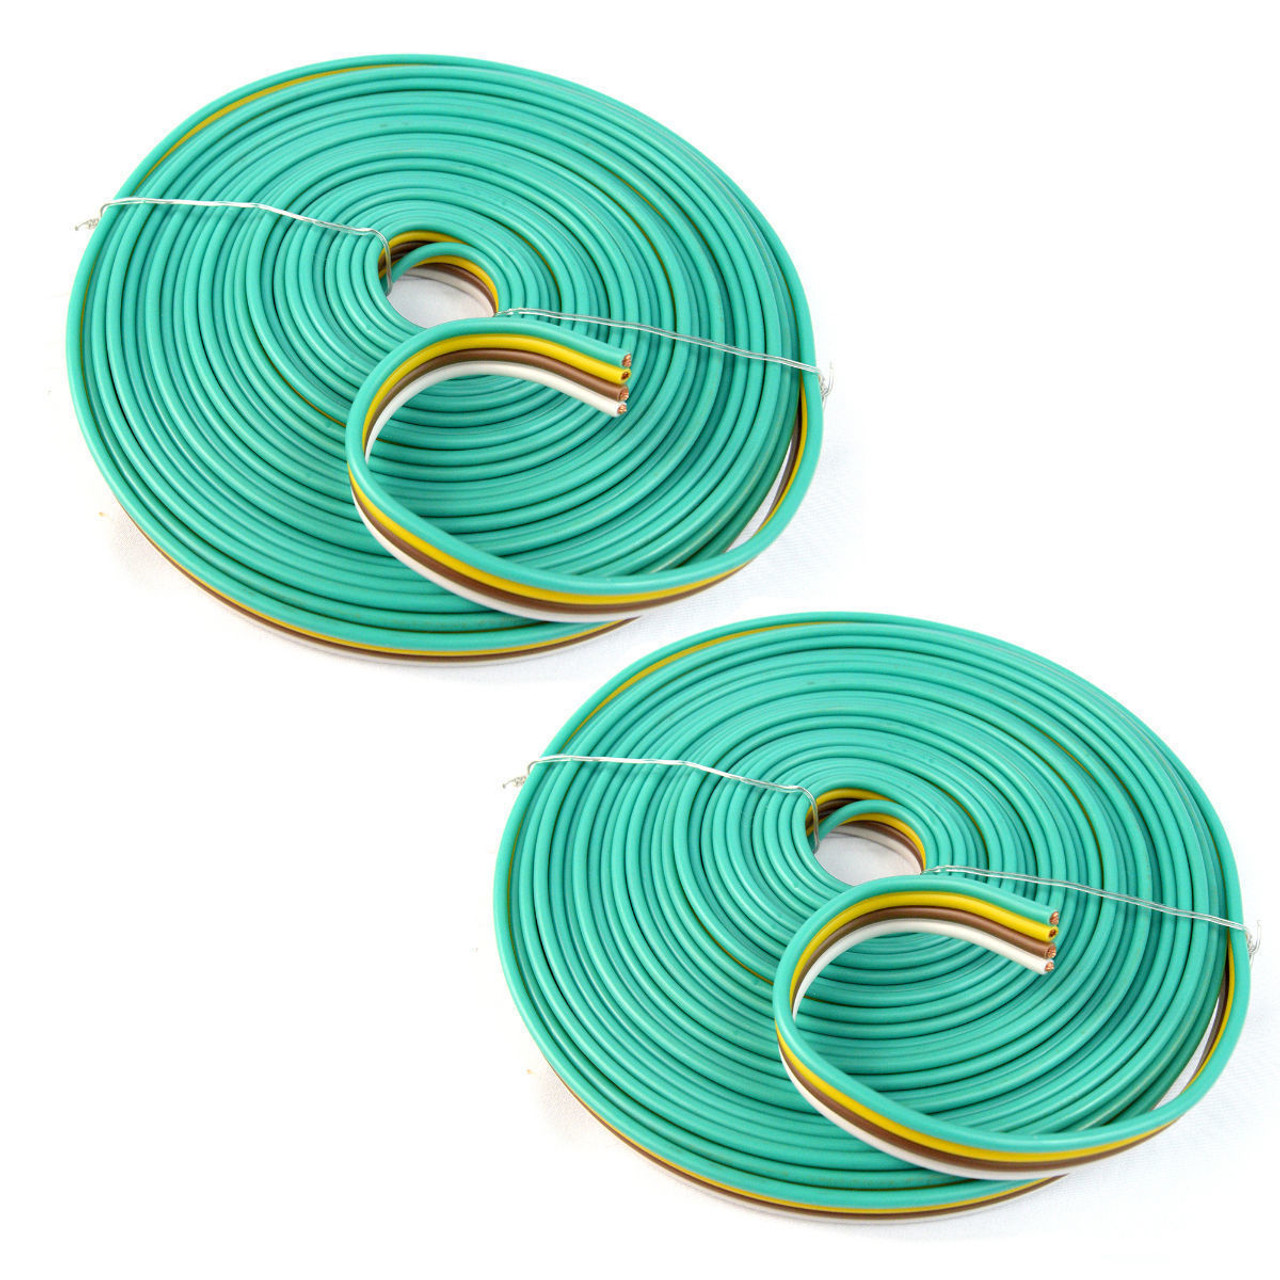 2 rolls 14 gauge 25 feet flat trailer light cable wiring harness copper wire [ 1200 x 1200 Pixel ]